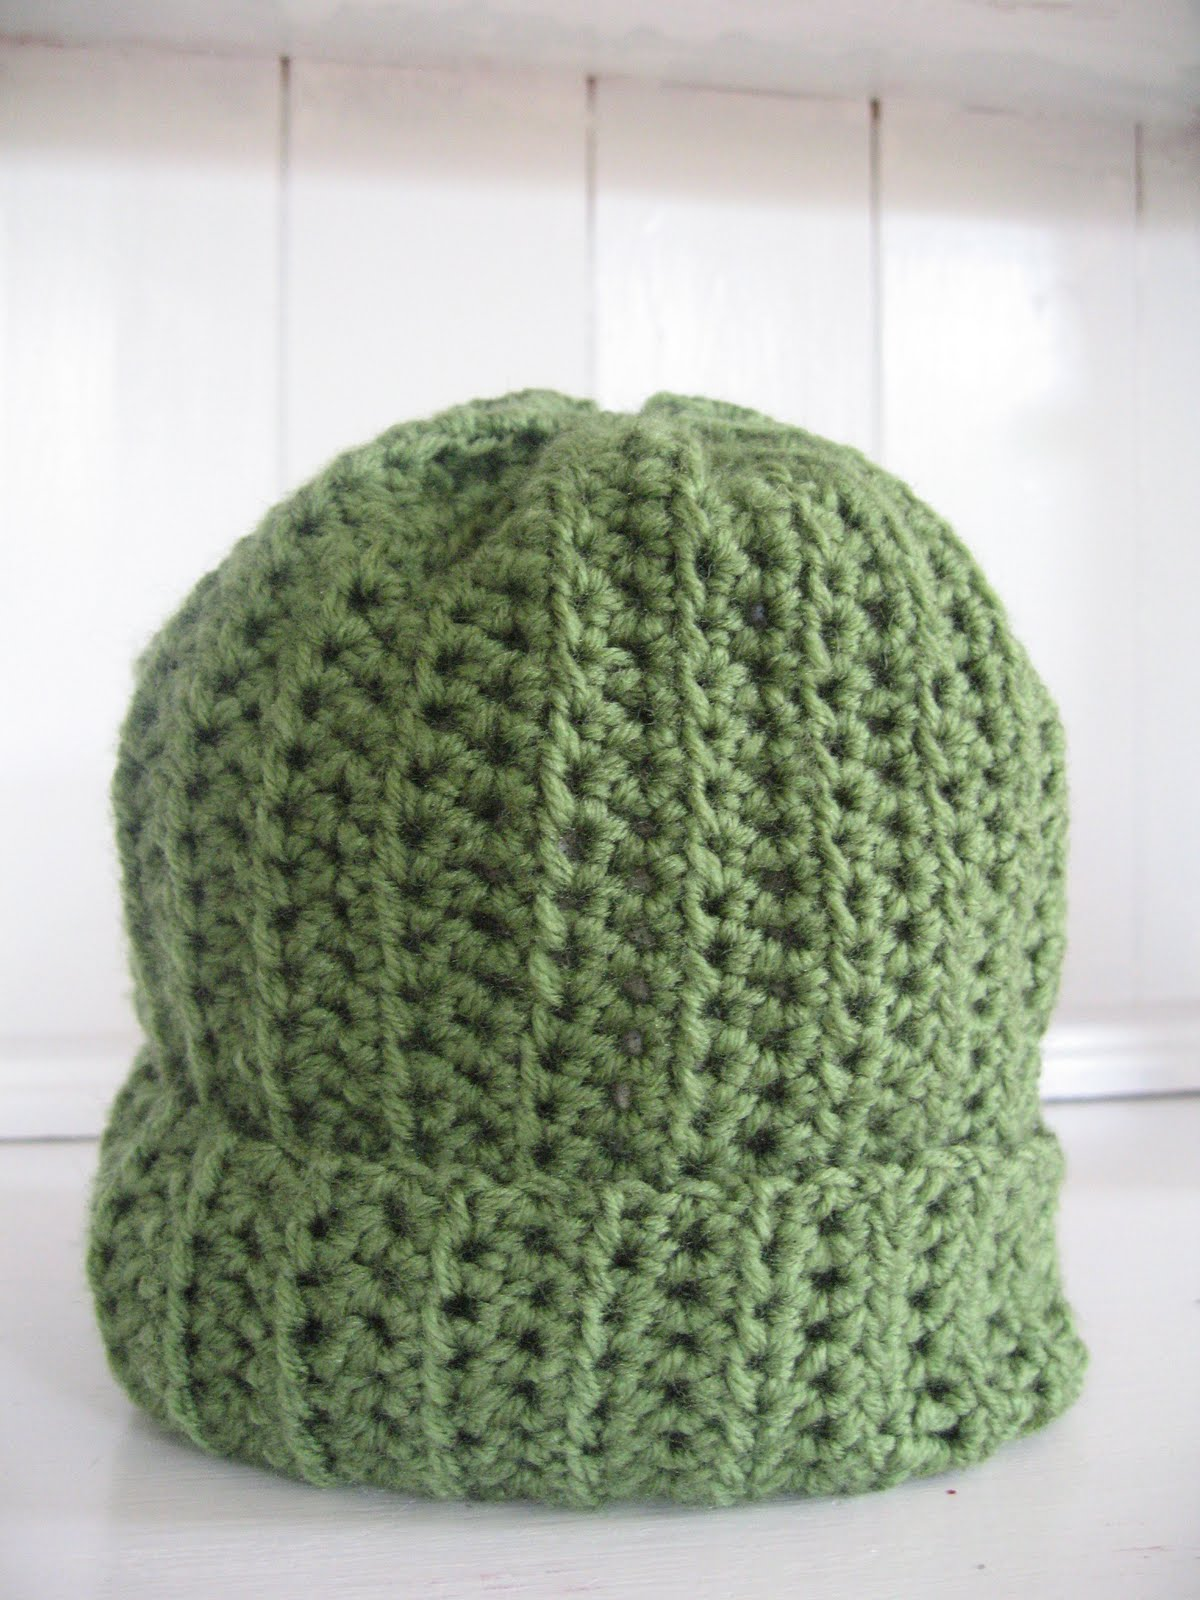 Half-double crochet decrease